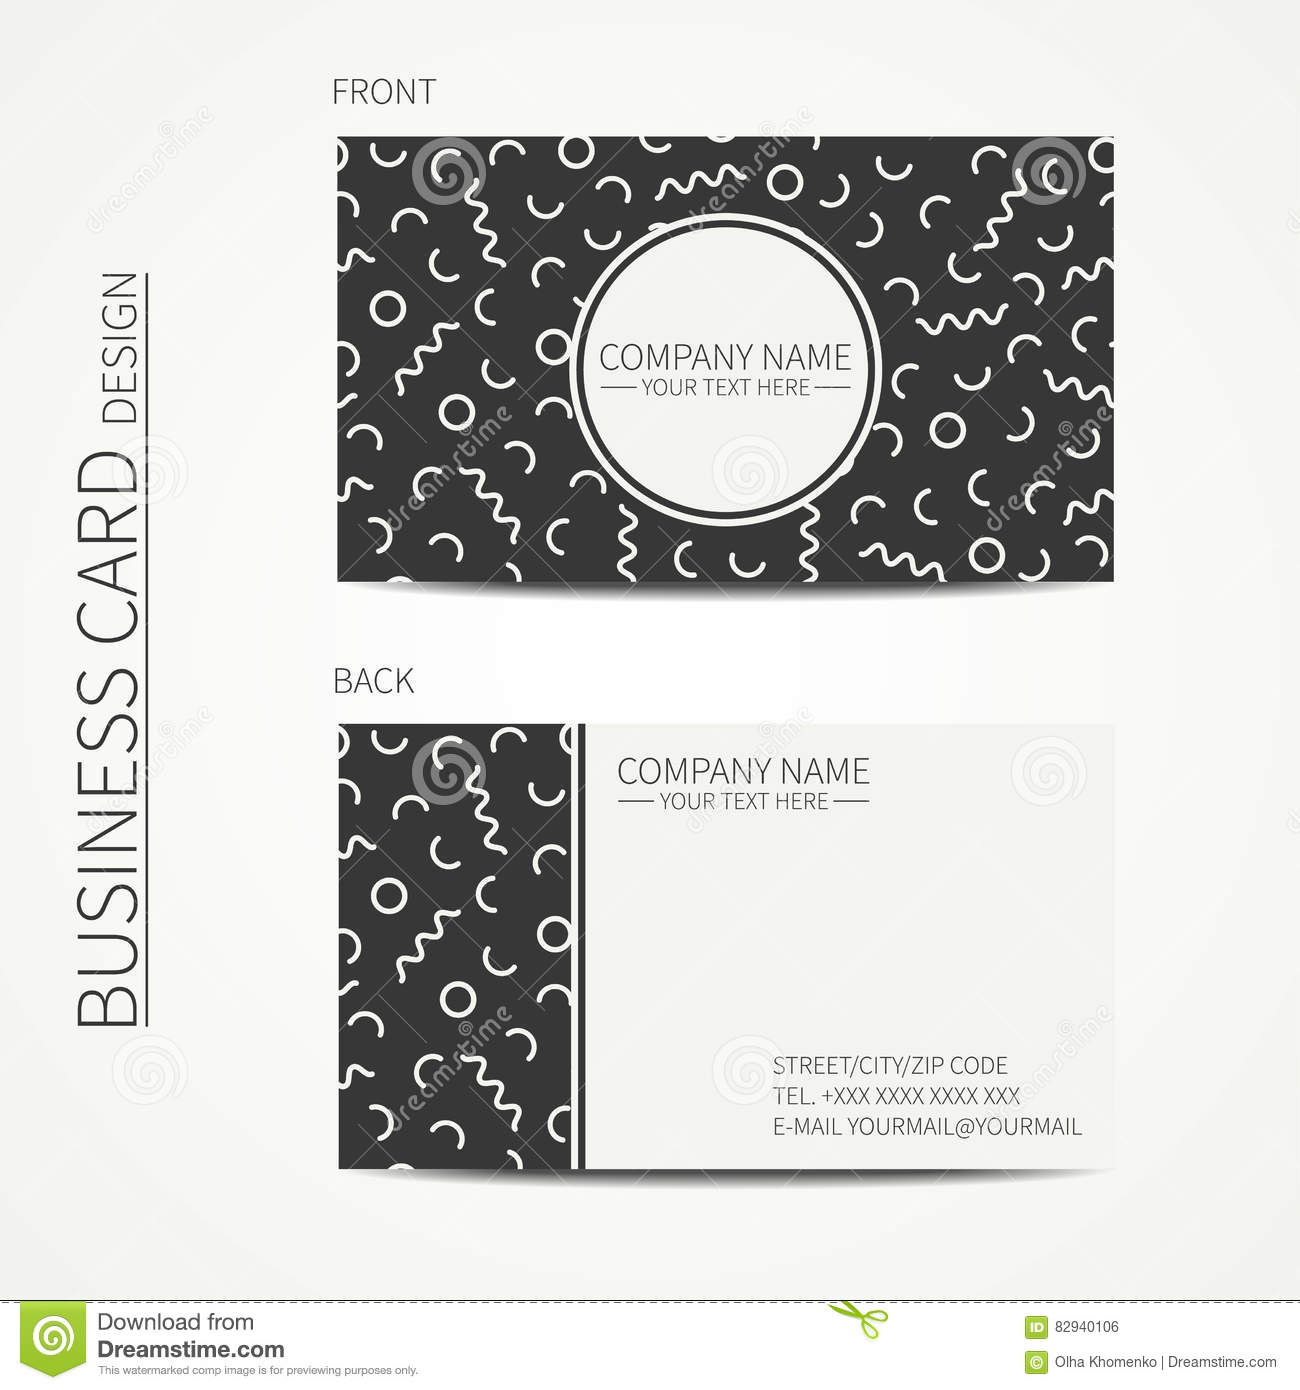 Business card template in the style of memphis cartoon for Business cards memphis